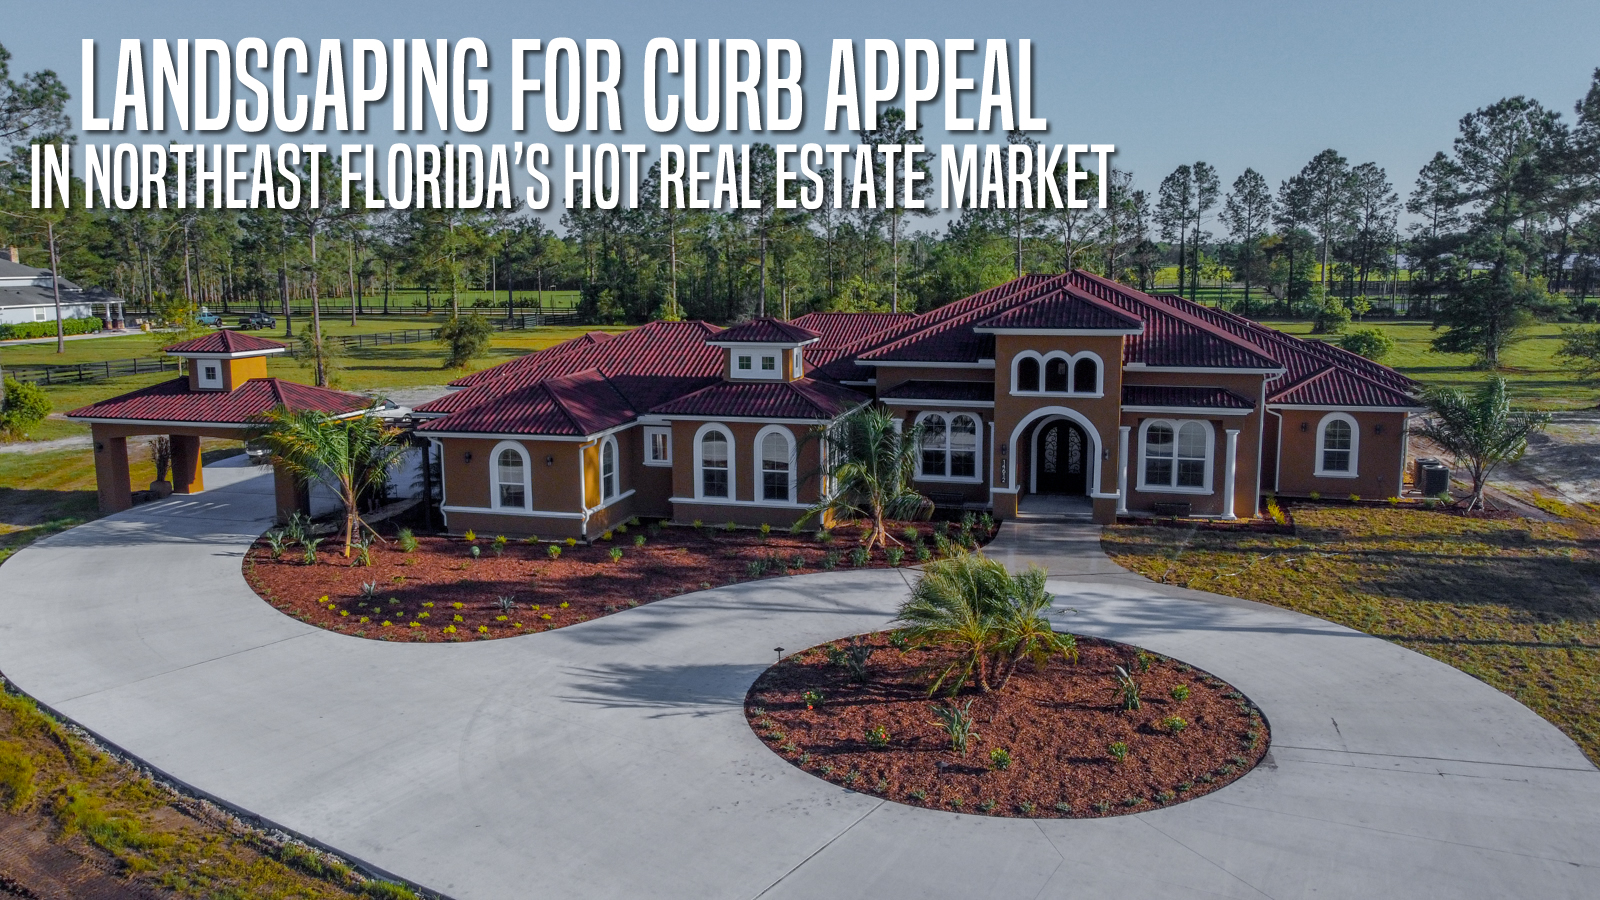 Landscaping for Curb Appeal in Northeast Florida's Hot Real Estate Market